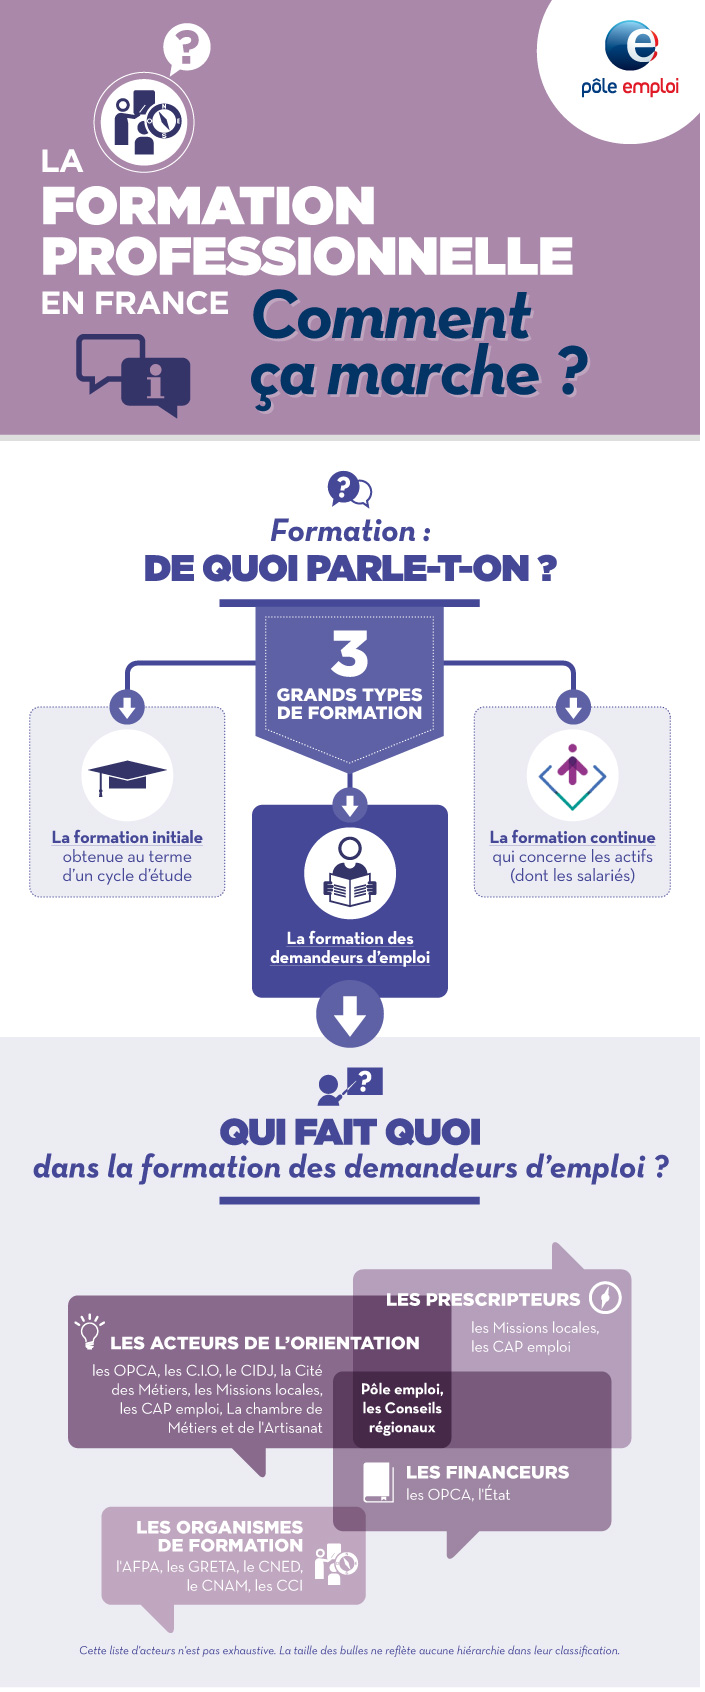 formation afpa comment ca marche